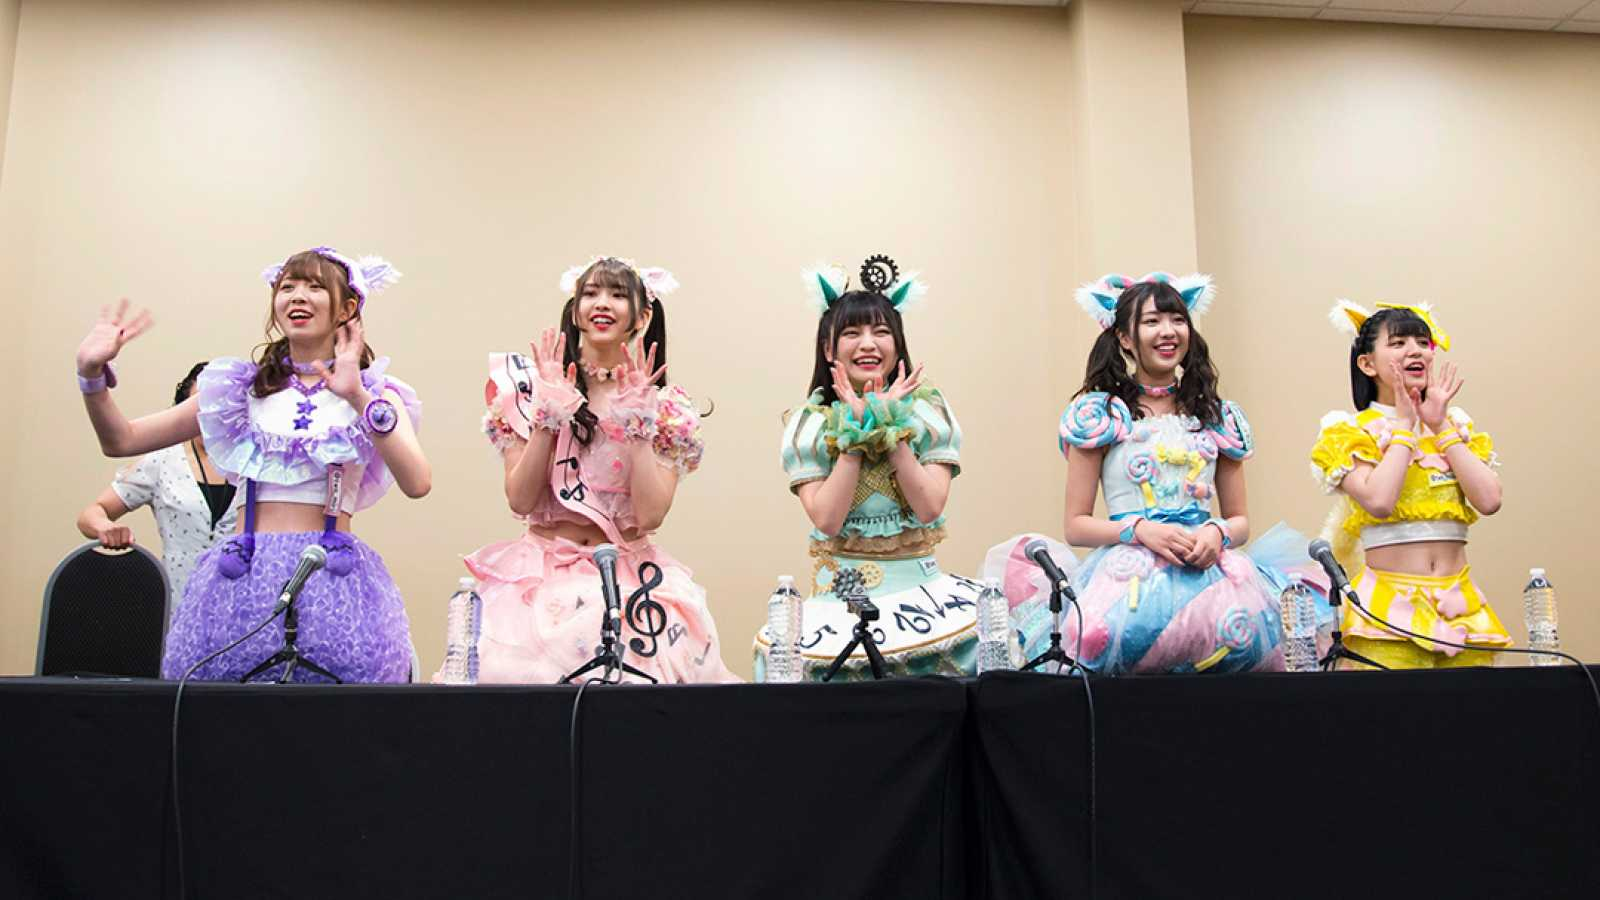 Q&A with Wasuta at Anime North 2019